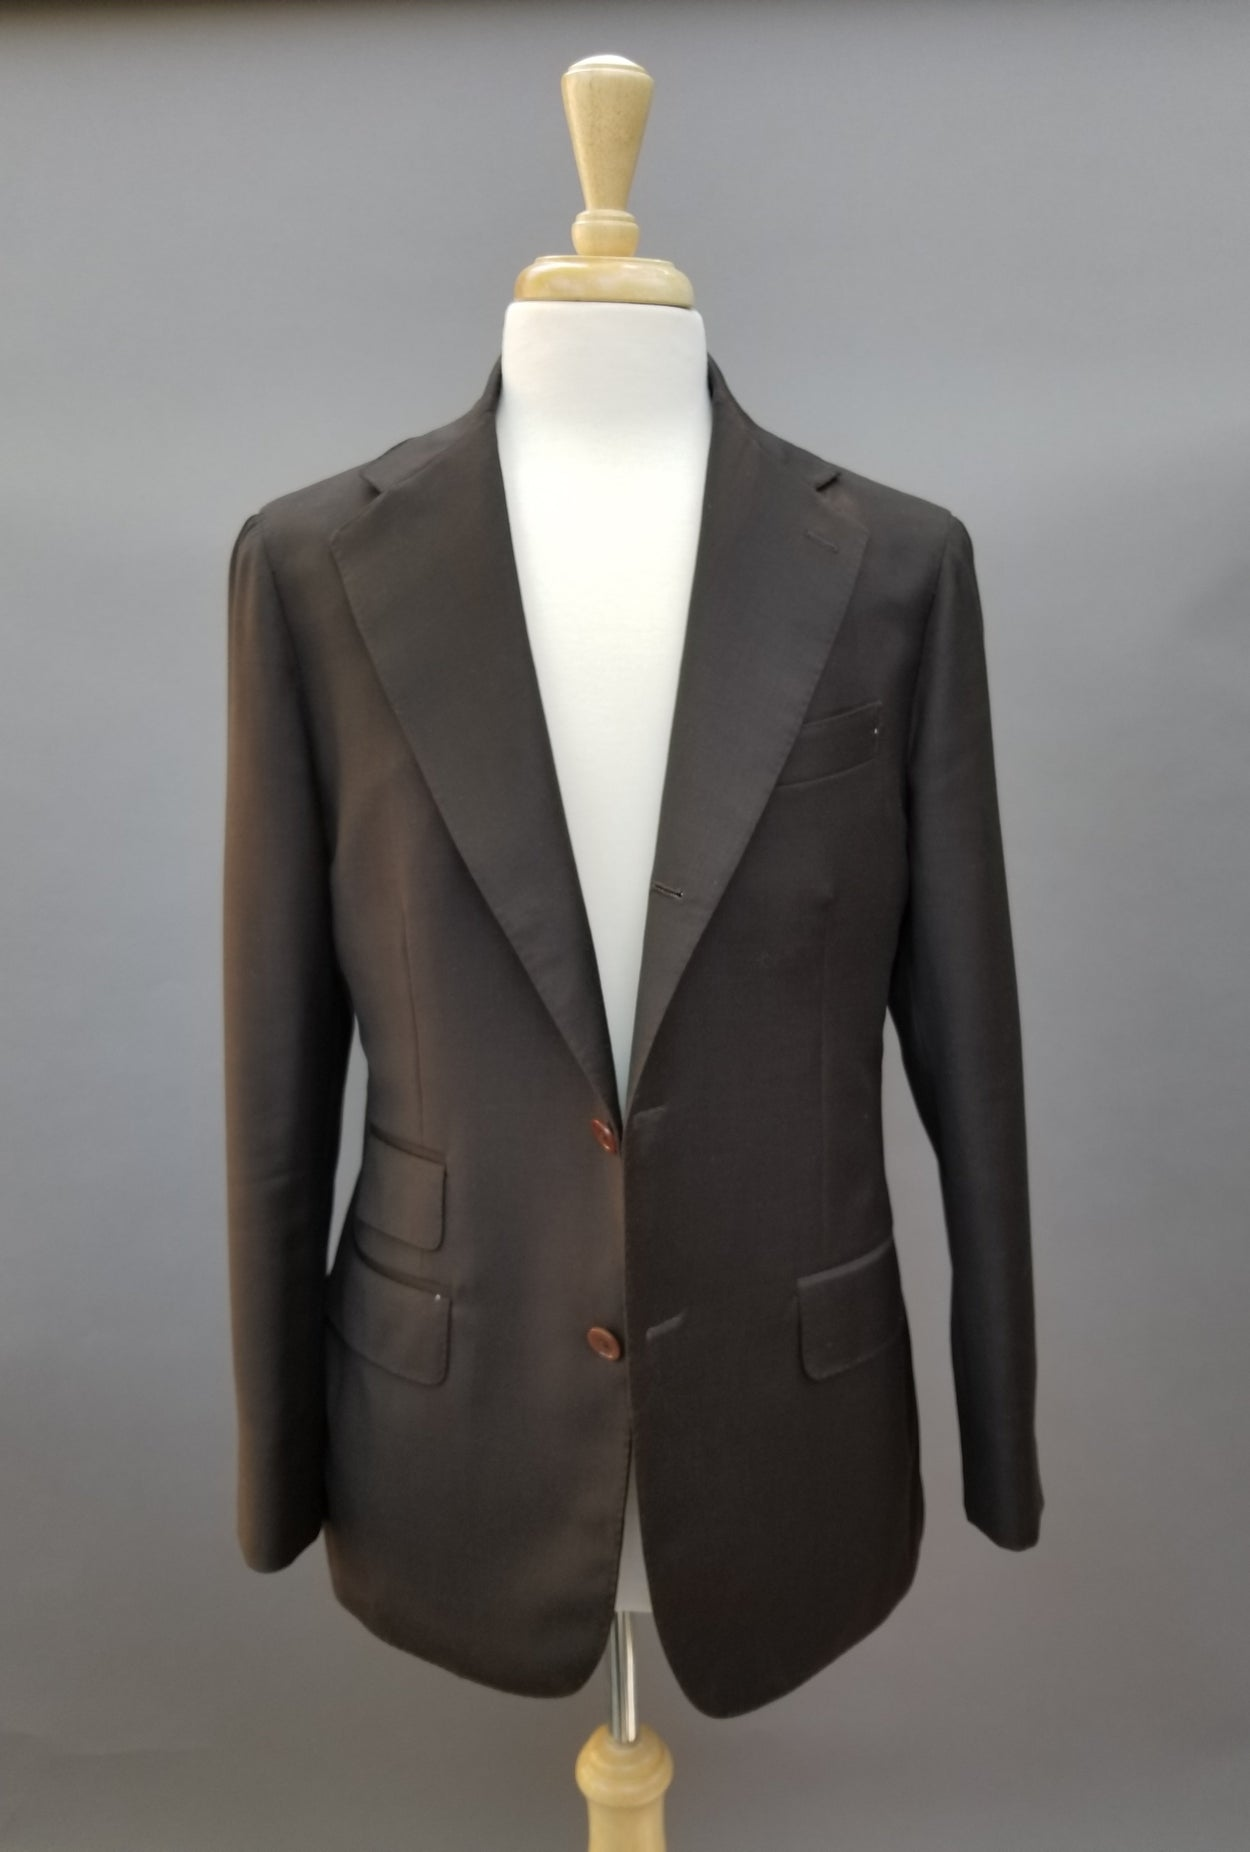 Chocolate Brown 9oz Wool Neapolitan Suit 38/40R